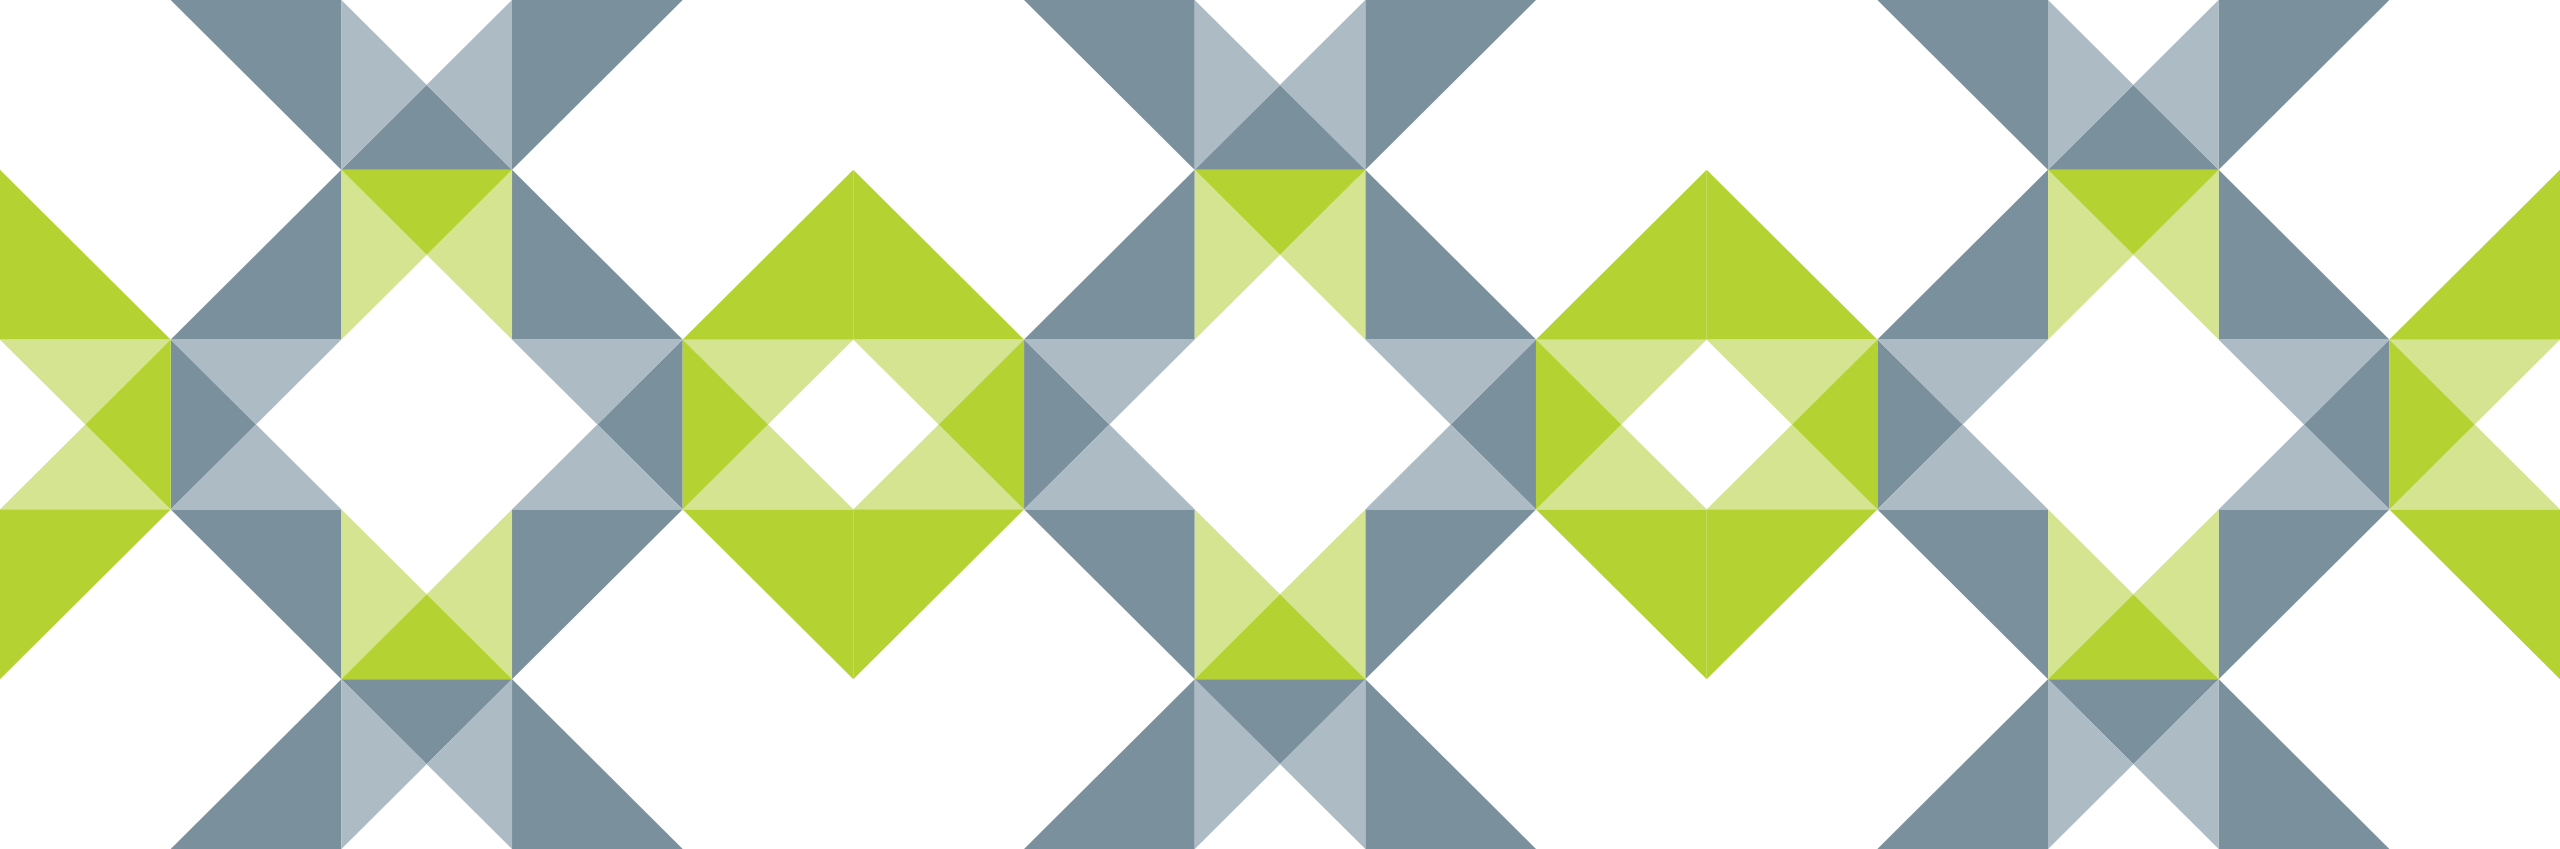 AXIS-Symbol-pattern-banner